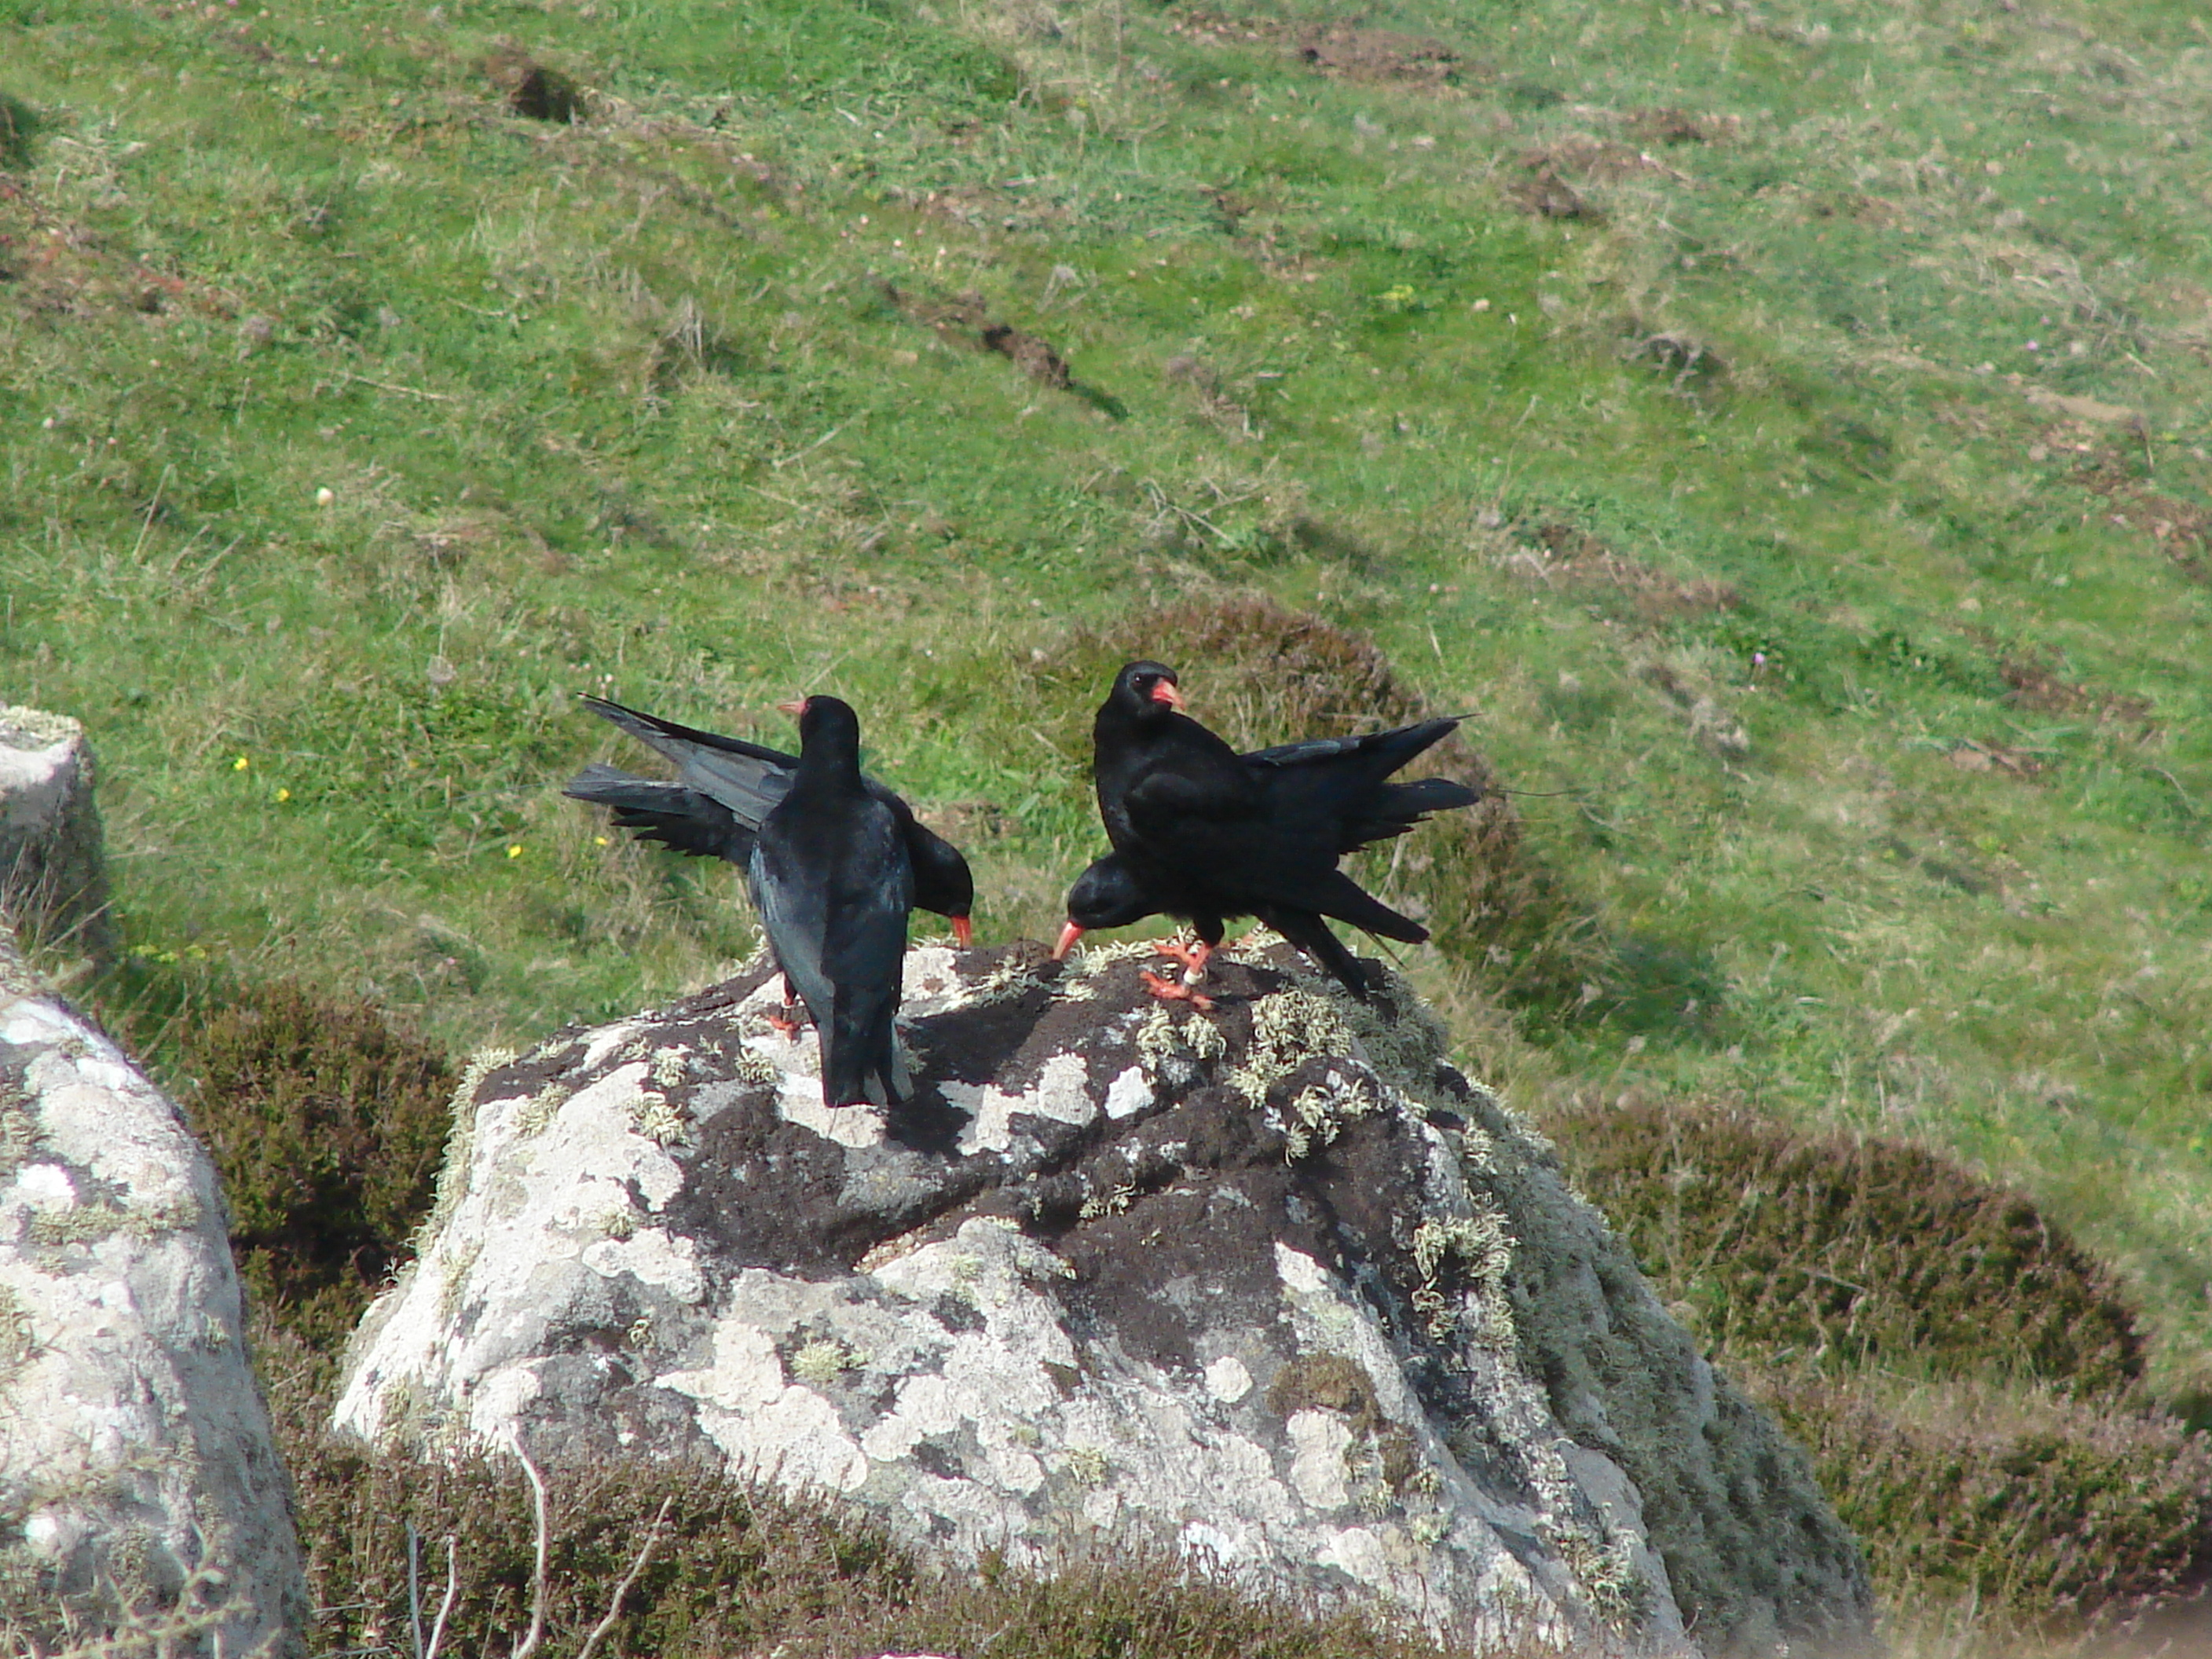 Red-billed choughs at Sorel. Photo by Pierre Rauscher